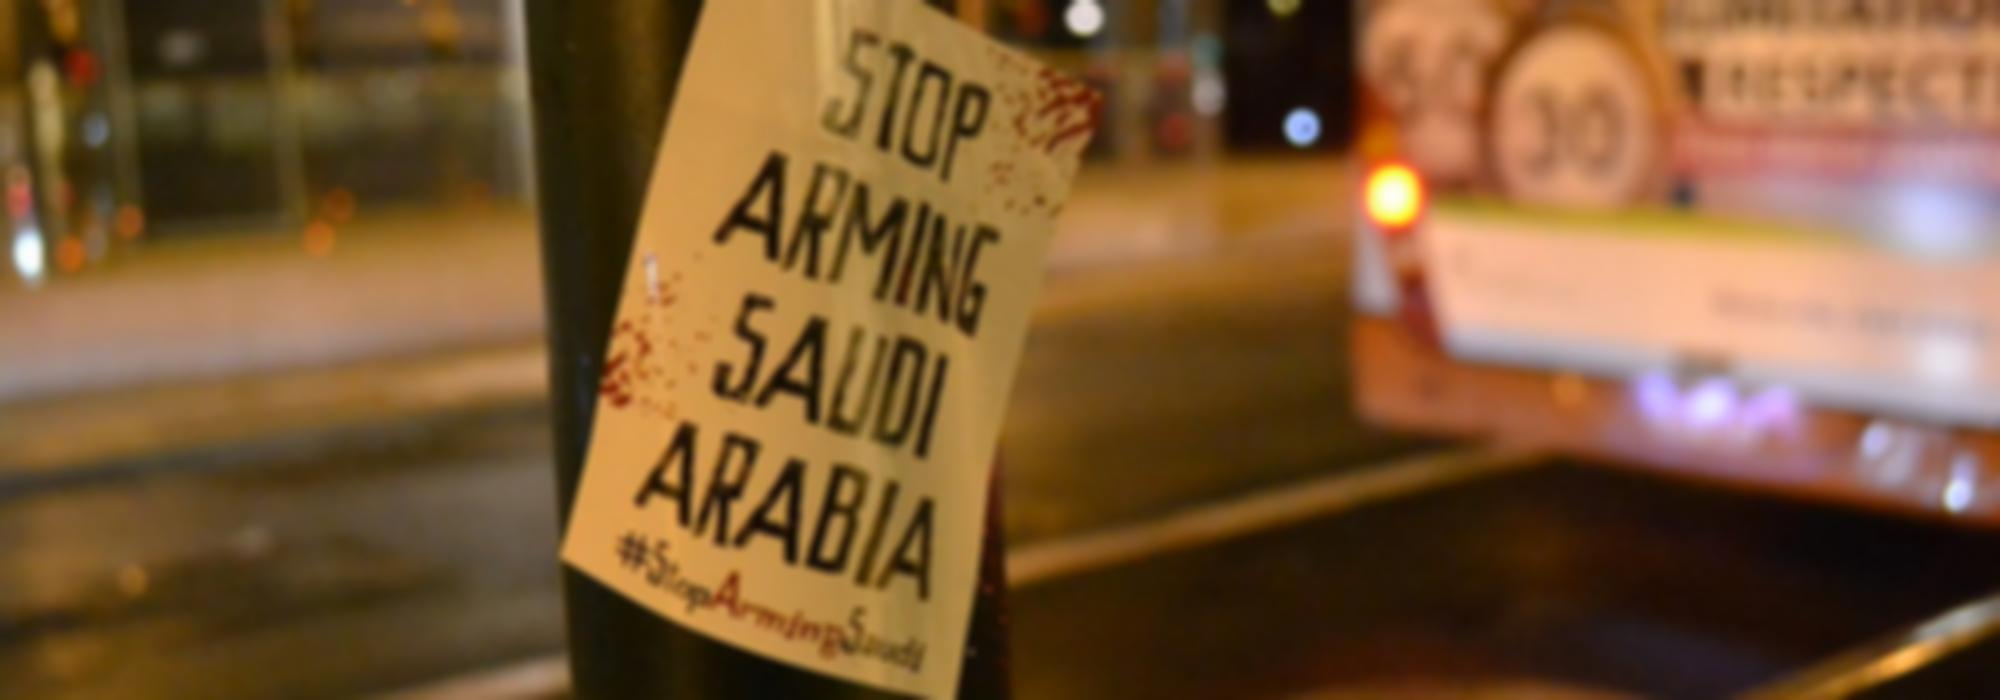 Sticker - Stop Arming Saudi